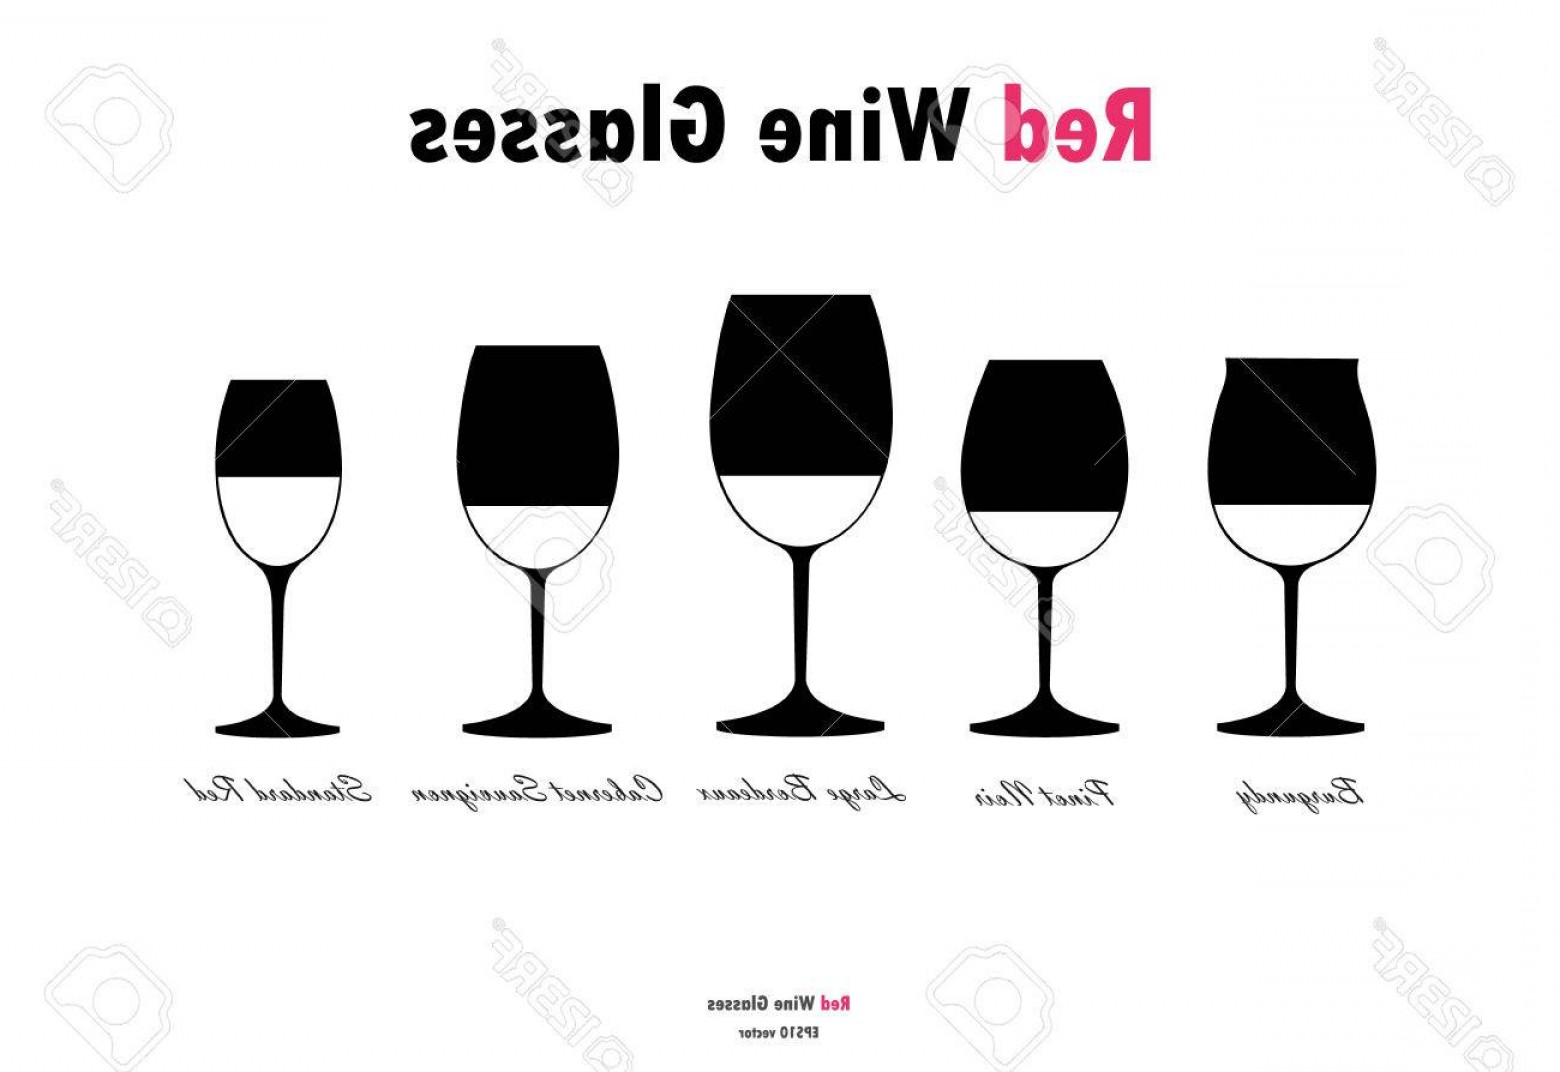 Single Wine Glass Silhouette Vector: Photostock Vector Red Wine Glass Silhouettes Vector Black White On White Background